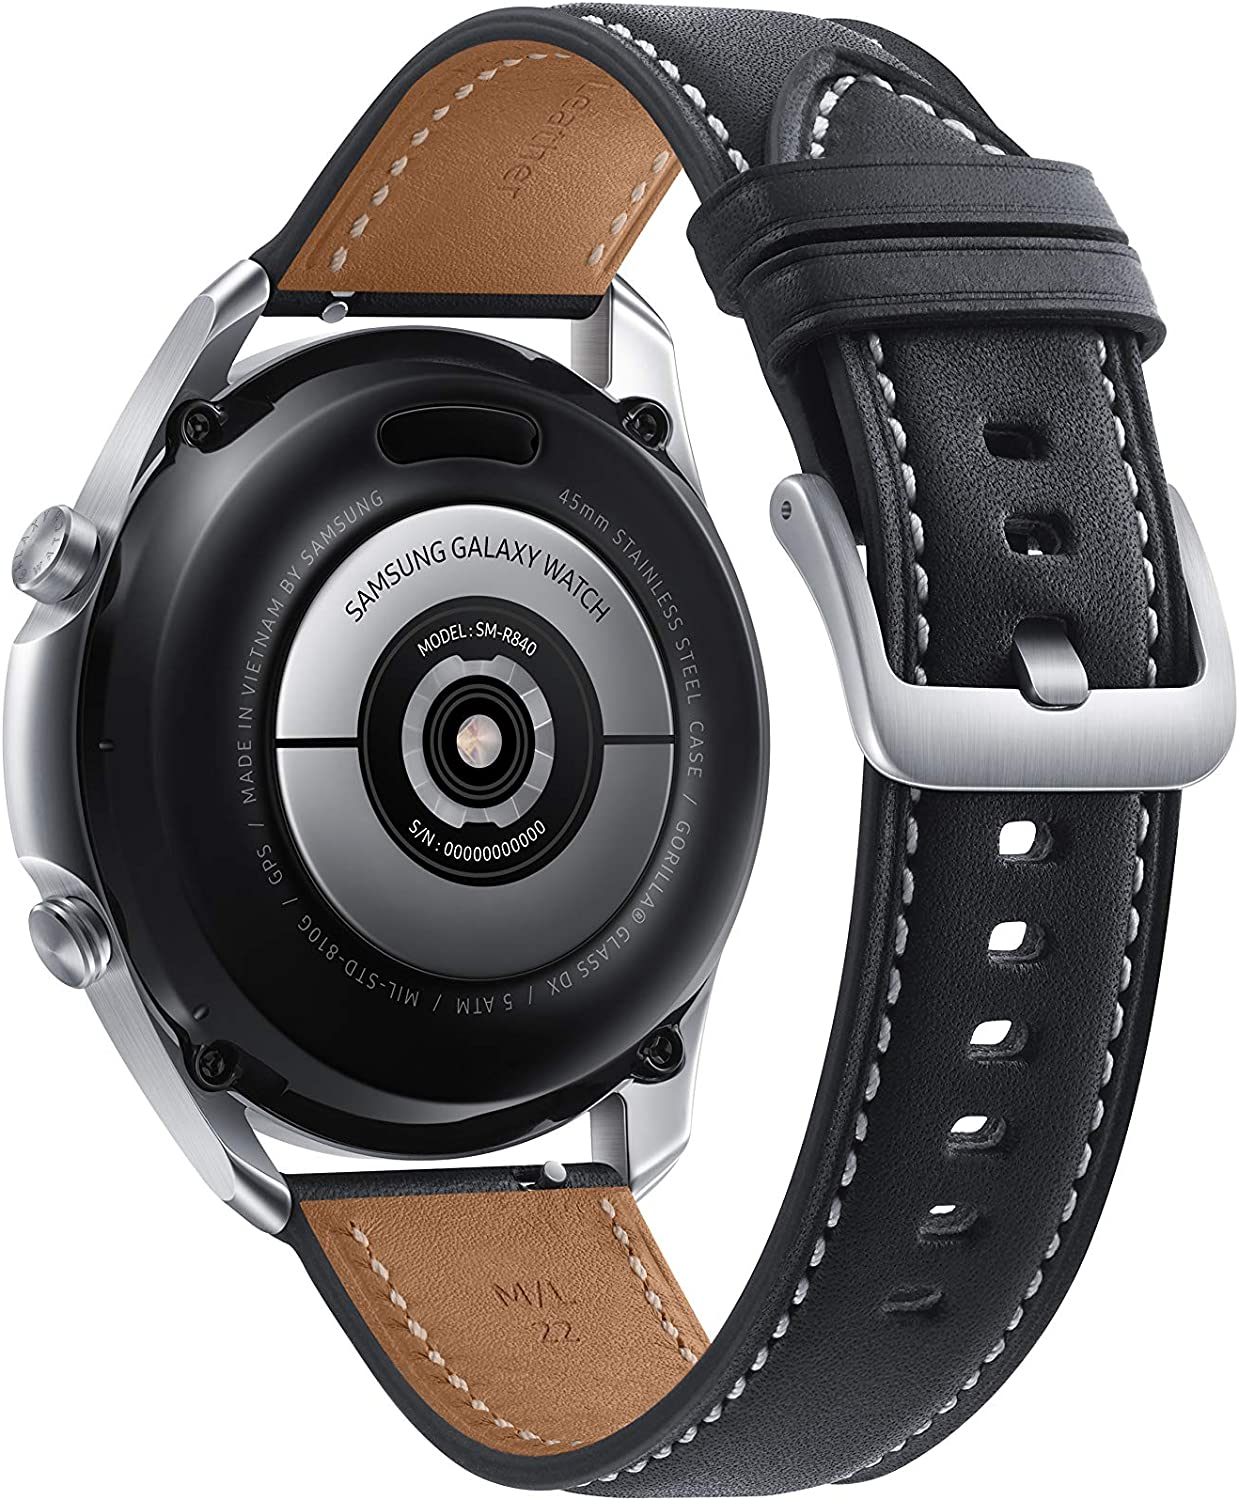 Montre GPS Galaxy Watch 3